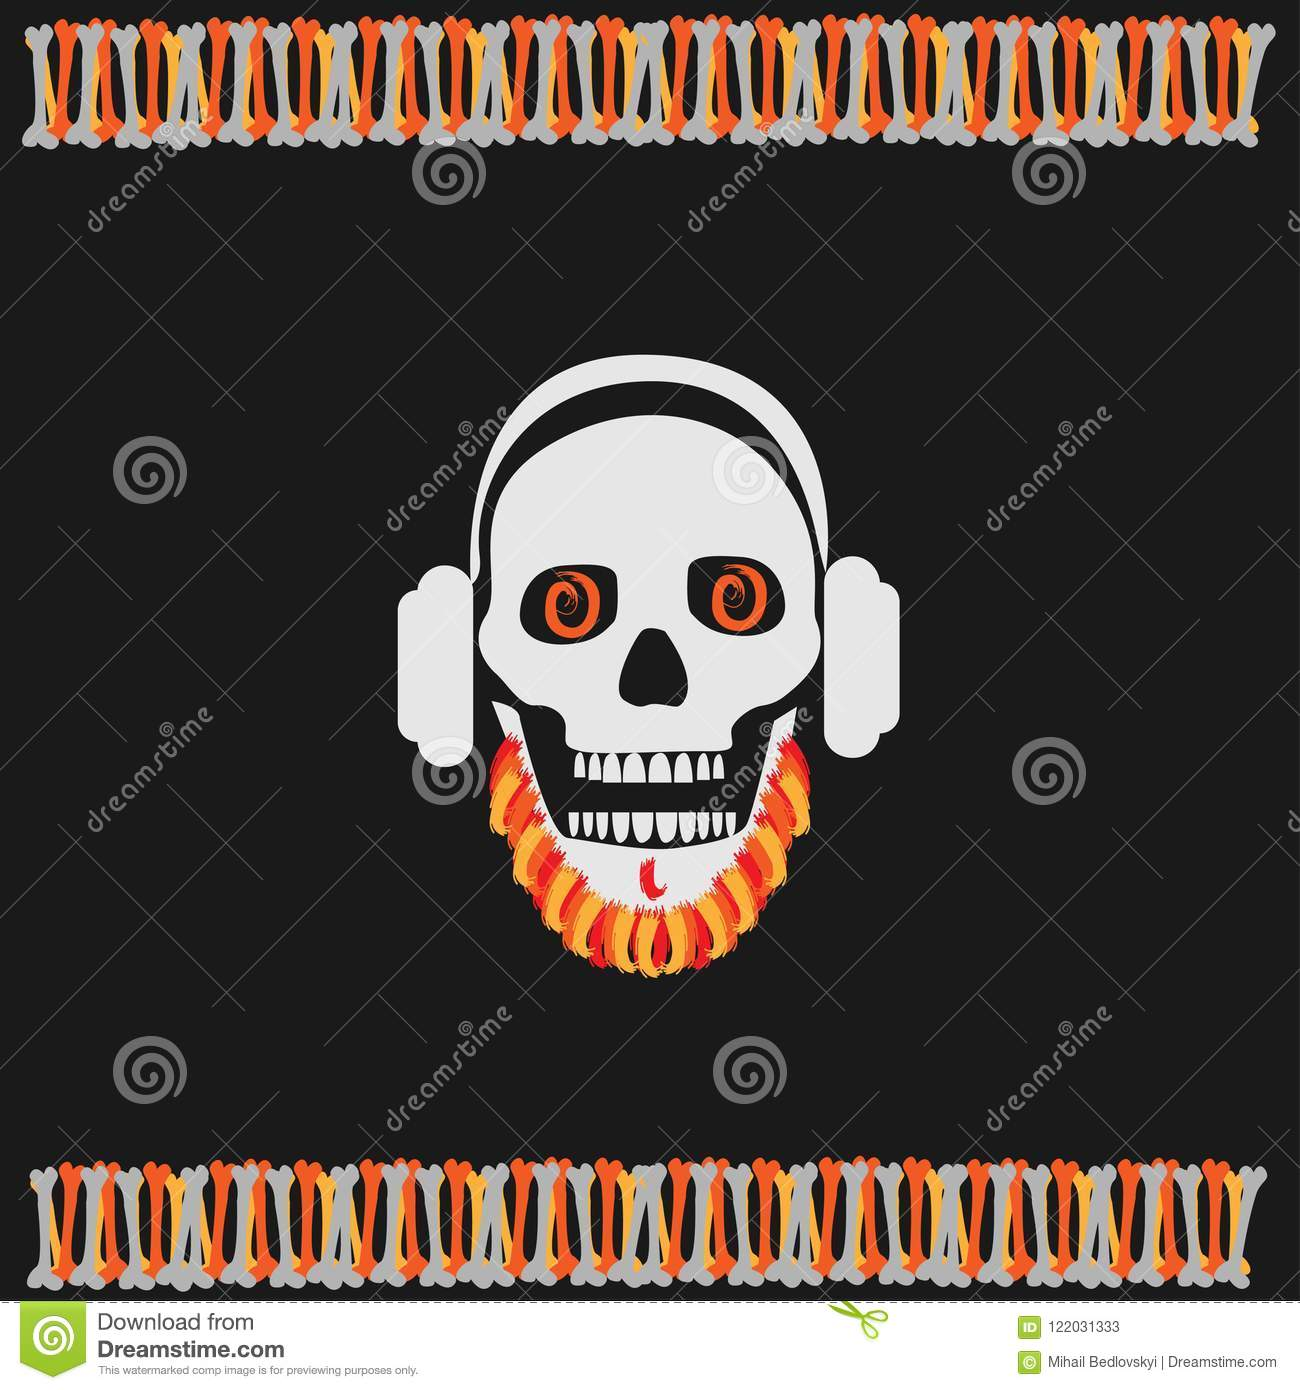 Skull Boy Wearing Headphones With A Beard Halloween Party Vector Illustration